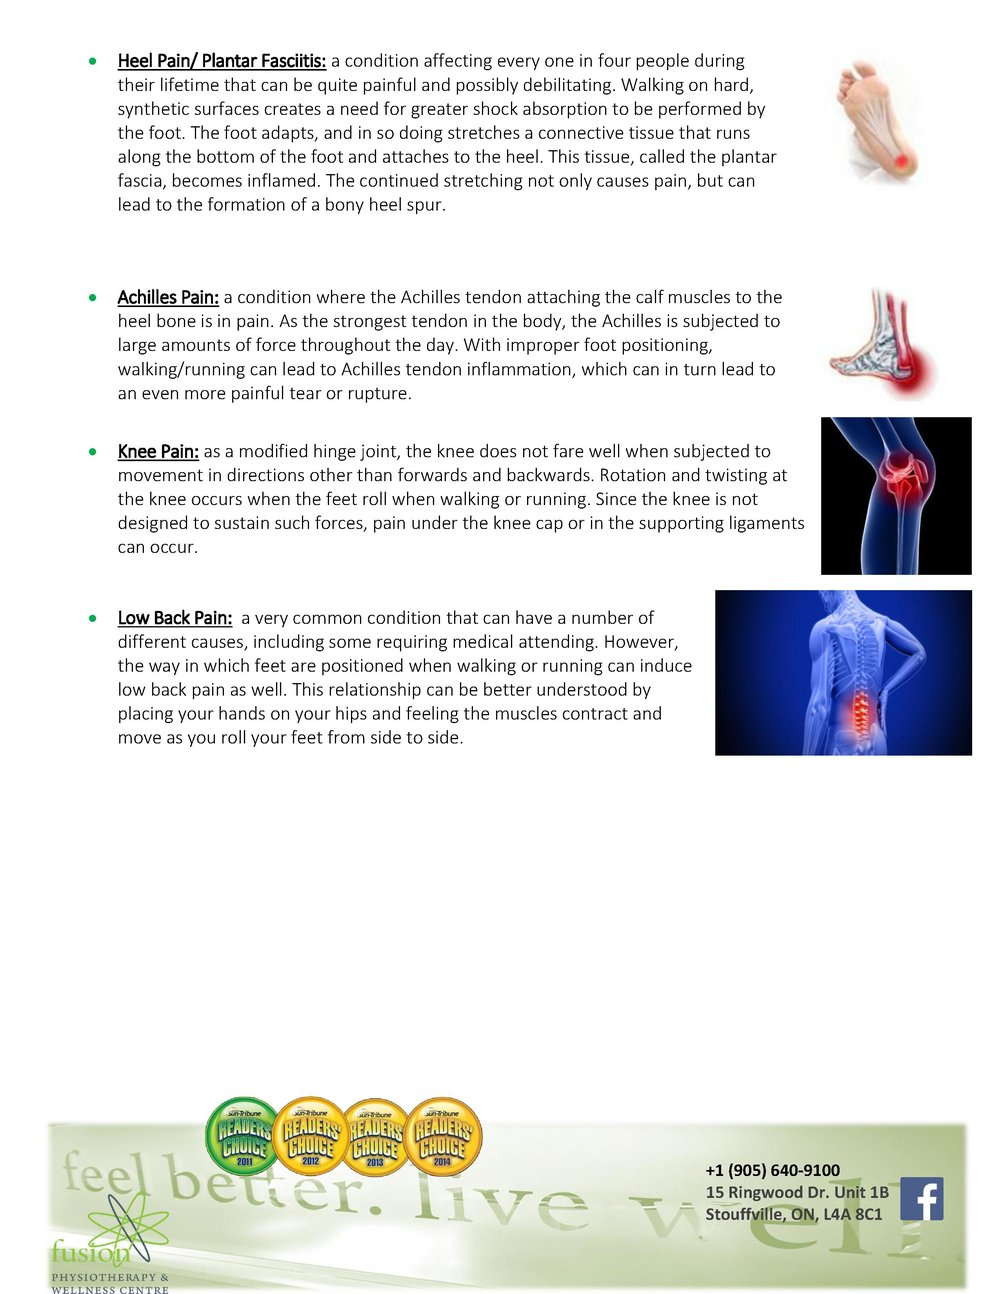 Bio Orthotics Info Sheet update-2.jpg